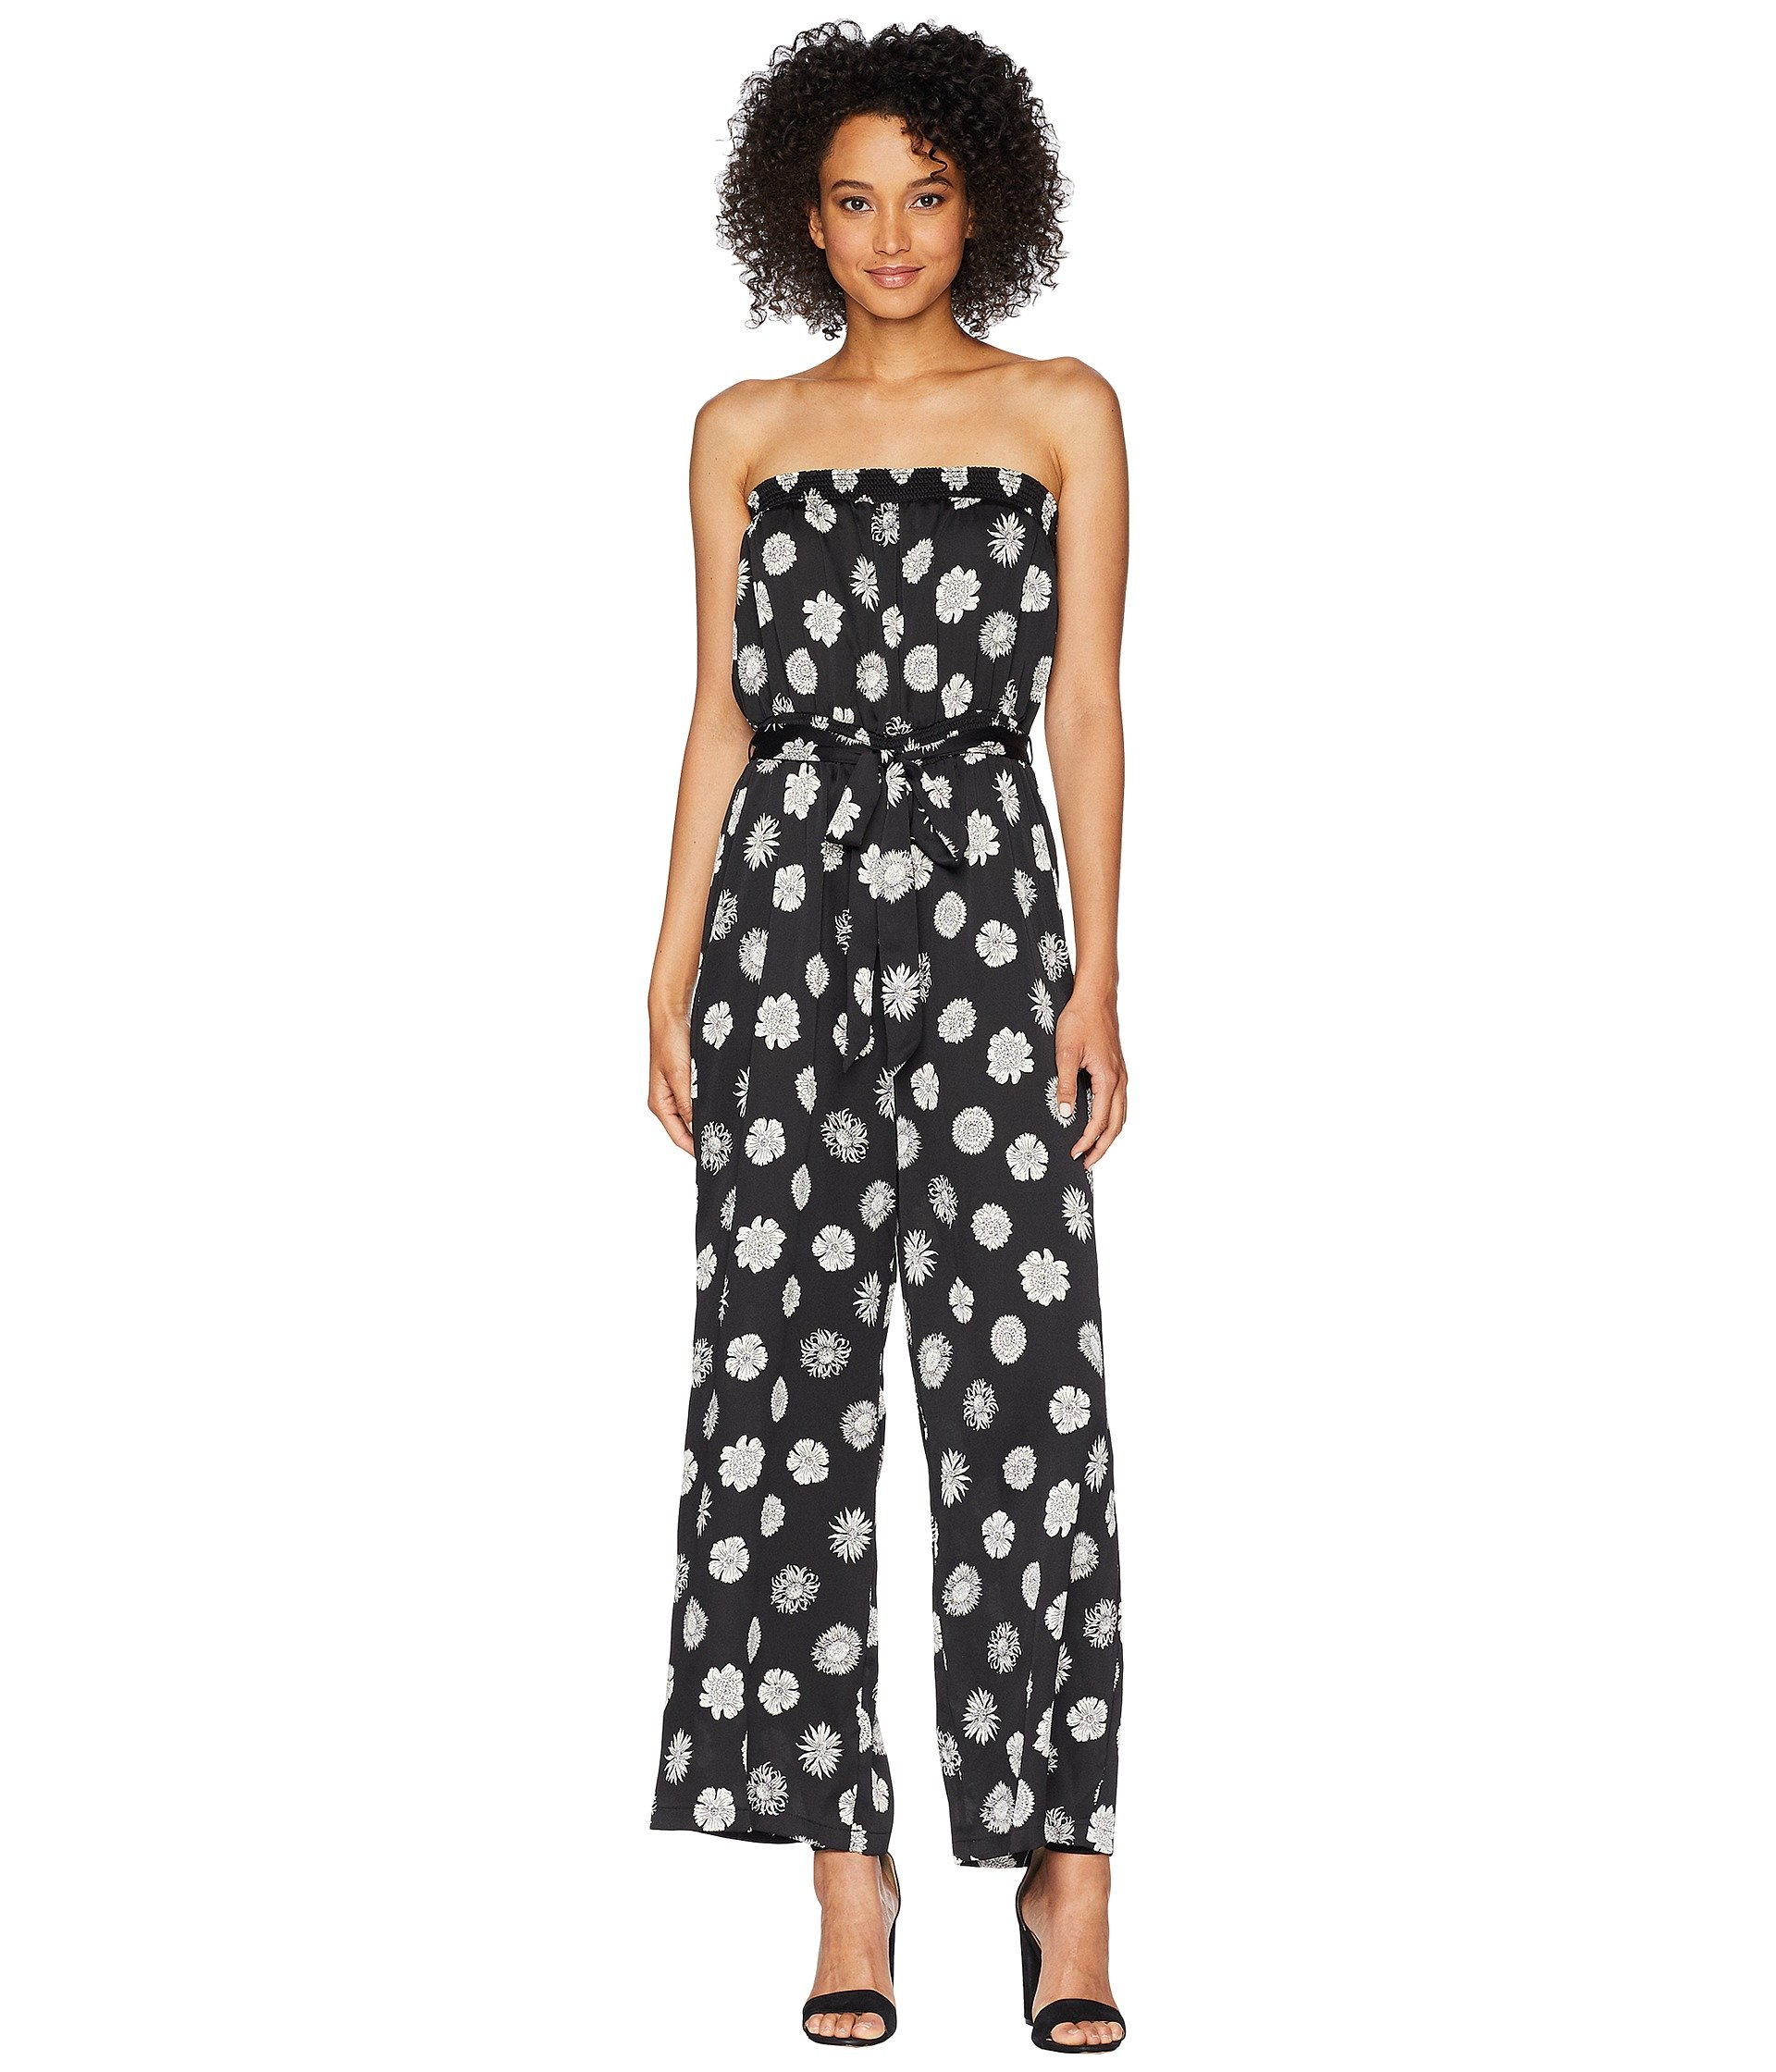 Enterizo para Mujer Vince Camuto Strapless Botanical Tropic Belted Jumpsuit  + Vince Camuto en VeoyCompro.net